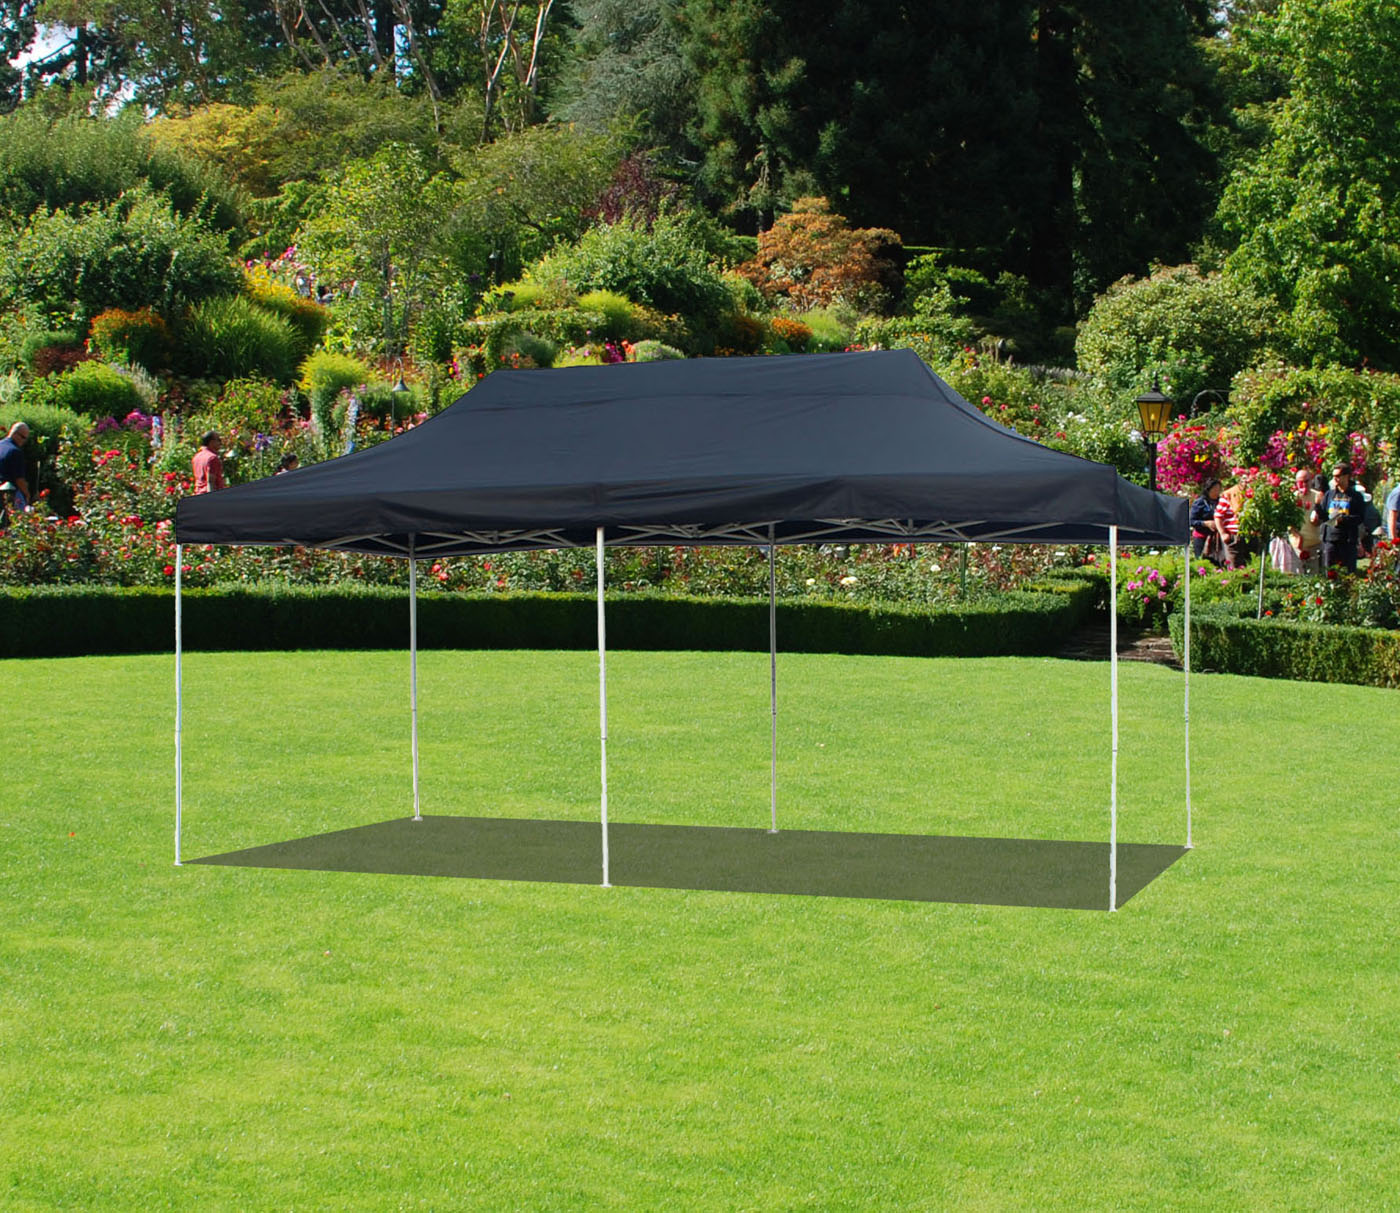 Canopy Tent 10 x 20 Commercial Fair Shelter Car Shelter Wedding Party Easy Pop Up by